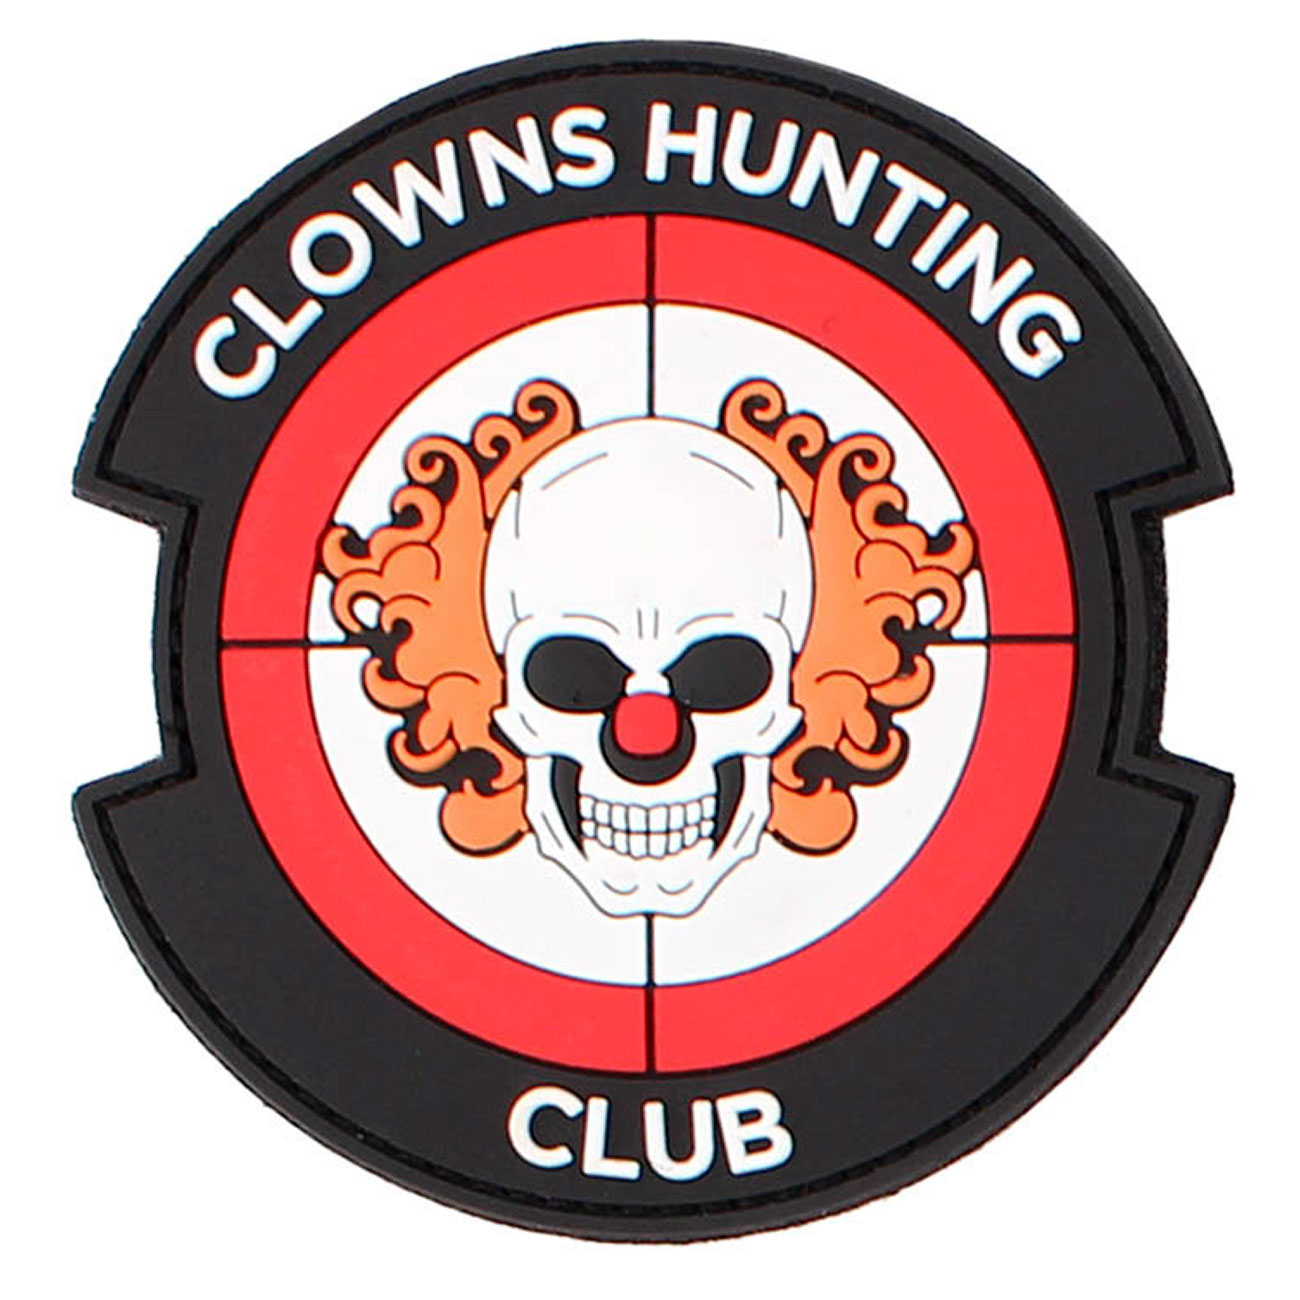 3D Rubber Patch Clowns Hunting Club rot 0